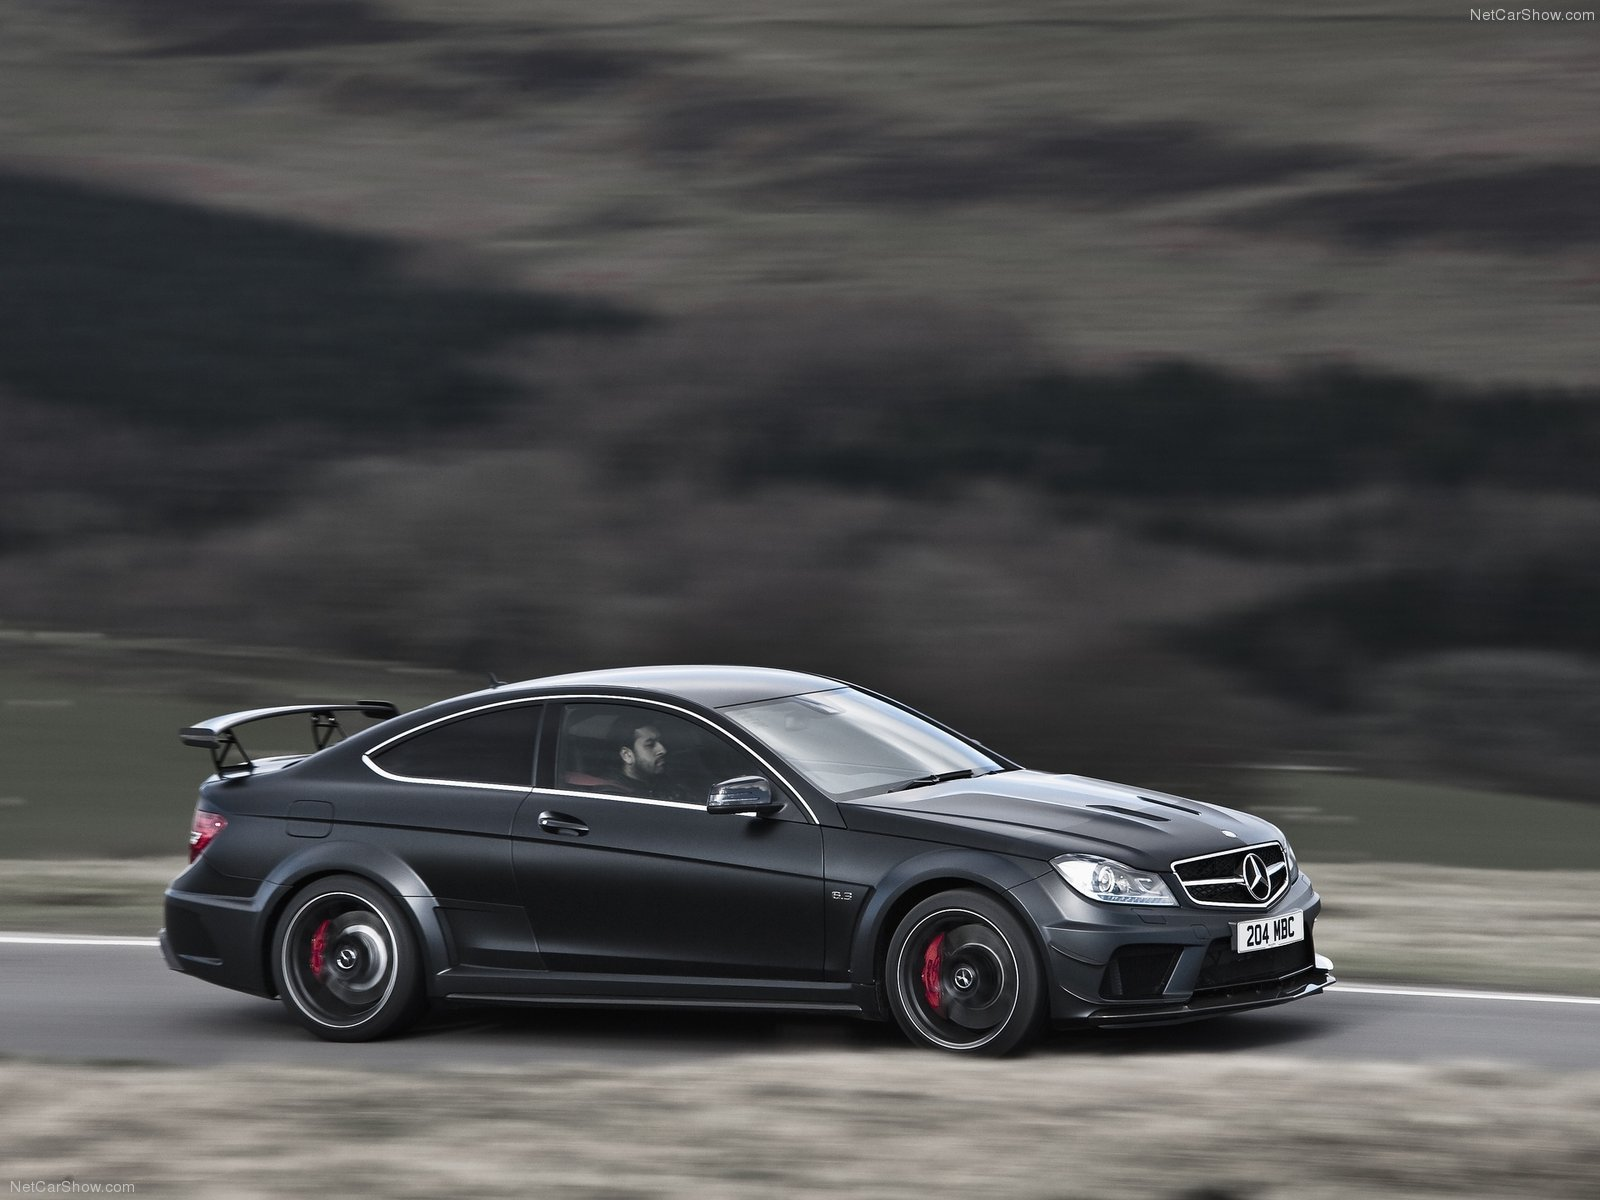 mercedes benz c63 amg black series wallpaper the image kid has it. Black Bedroom Furniture Sets. Home Design Ideas